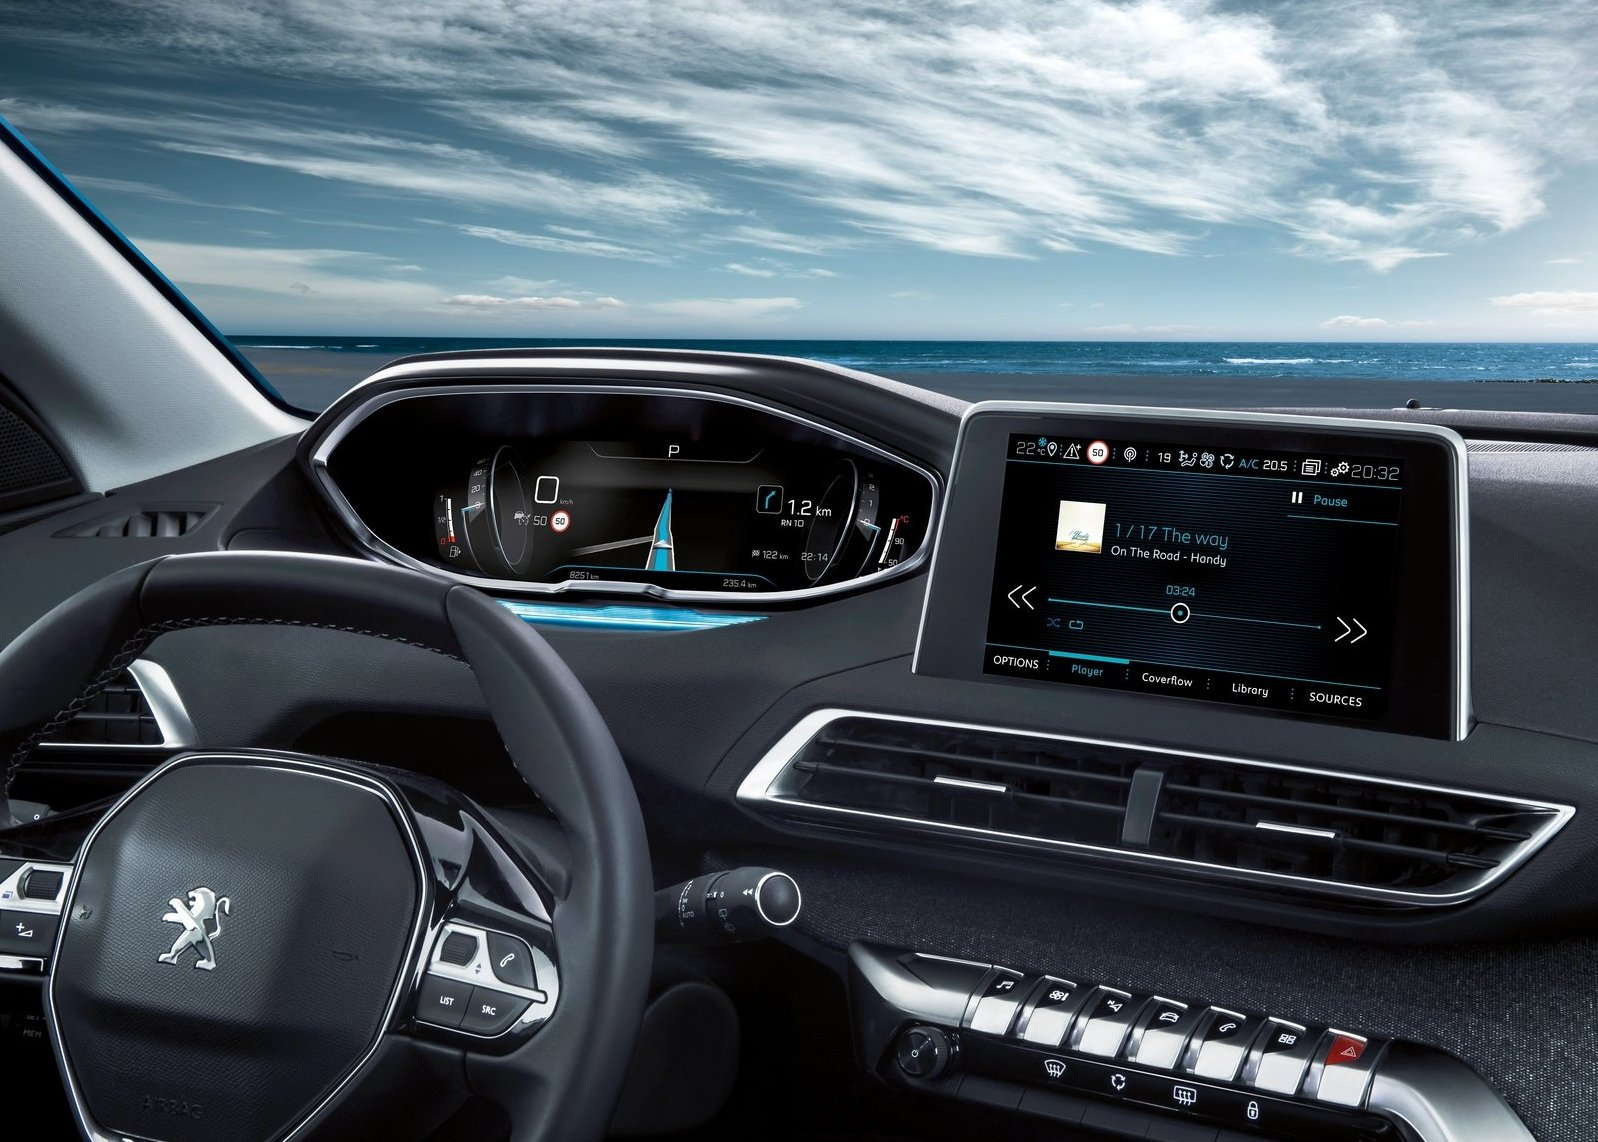 2017 Peugeot 5008 dashboard new features